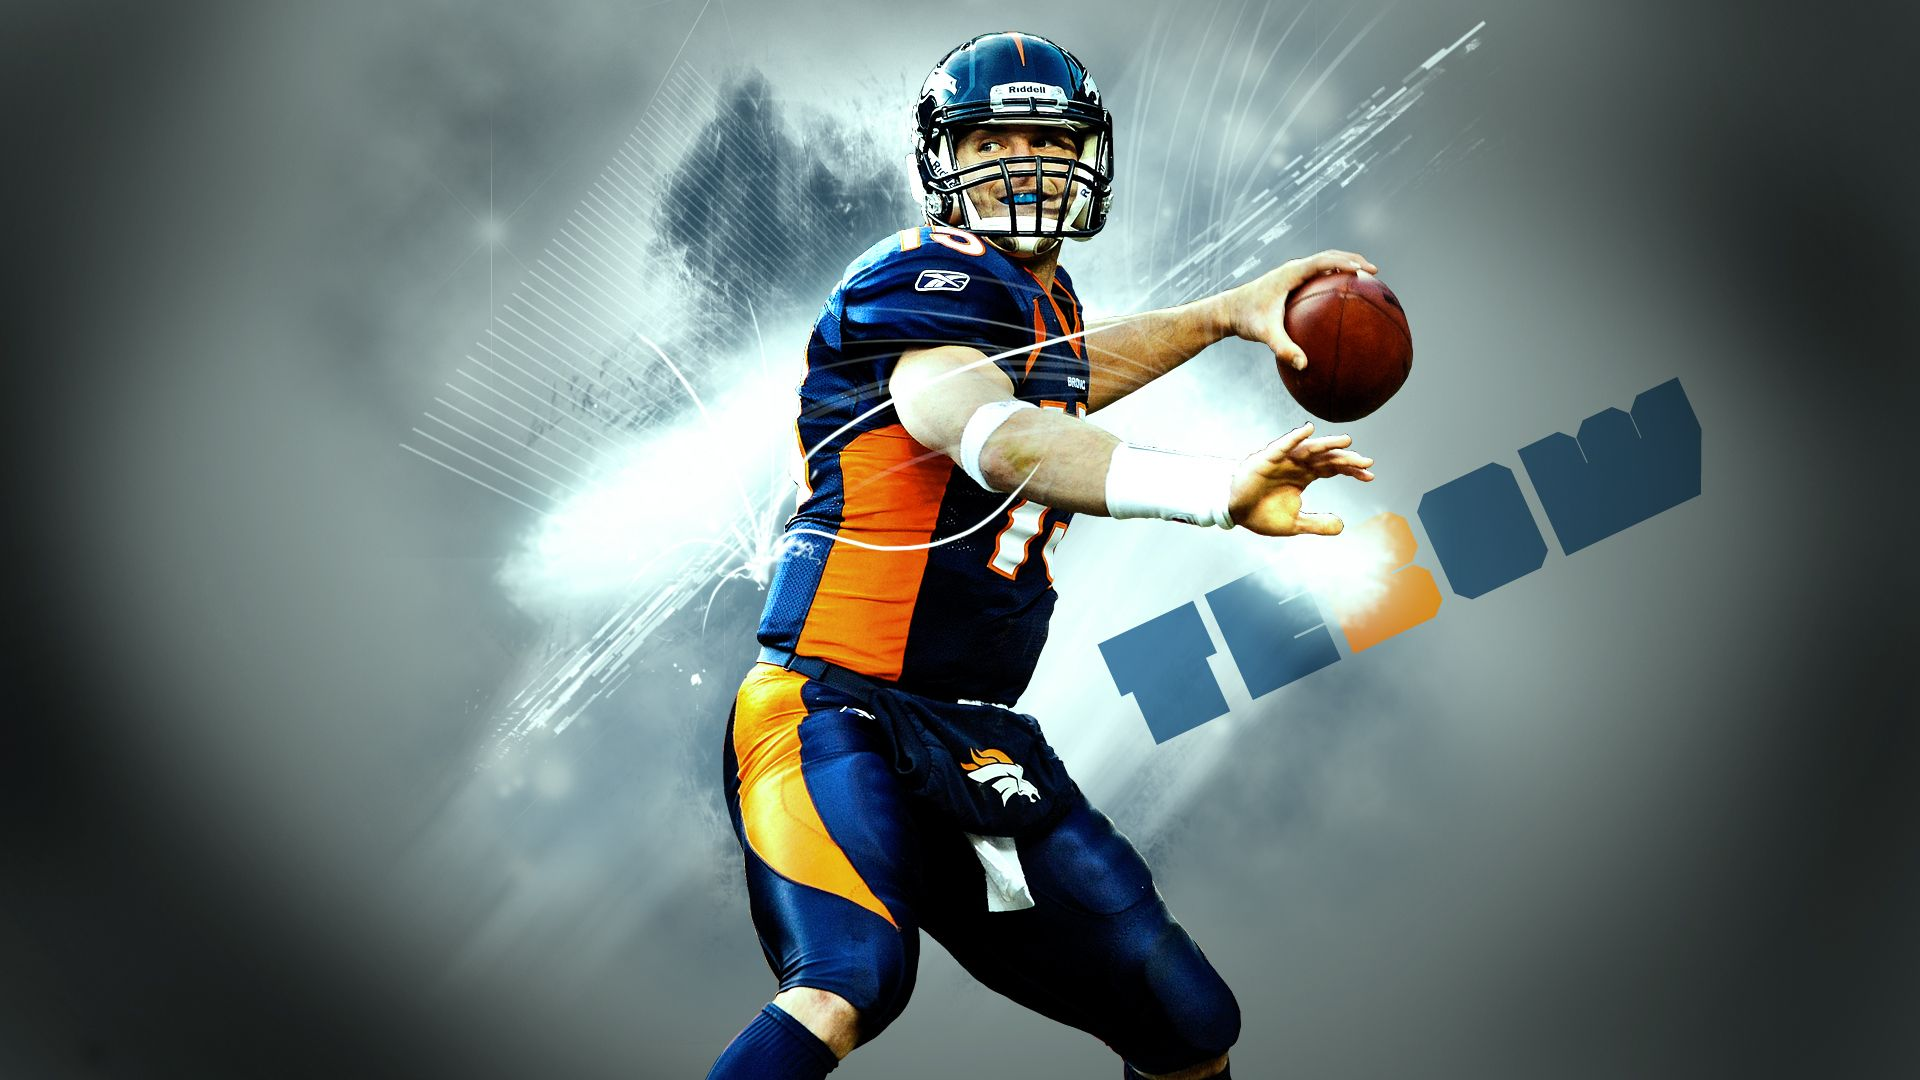 Tim Tebow (Denver Broncos) Full HD Wallpaper 1080p